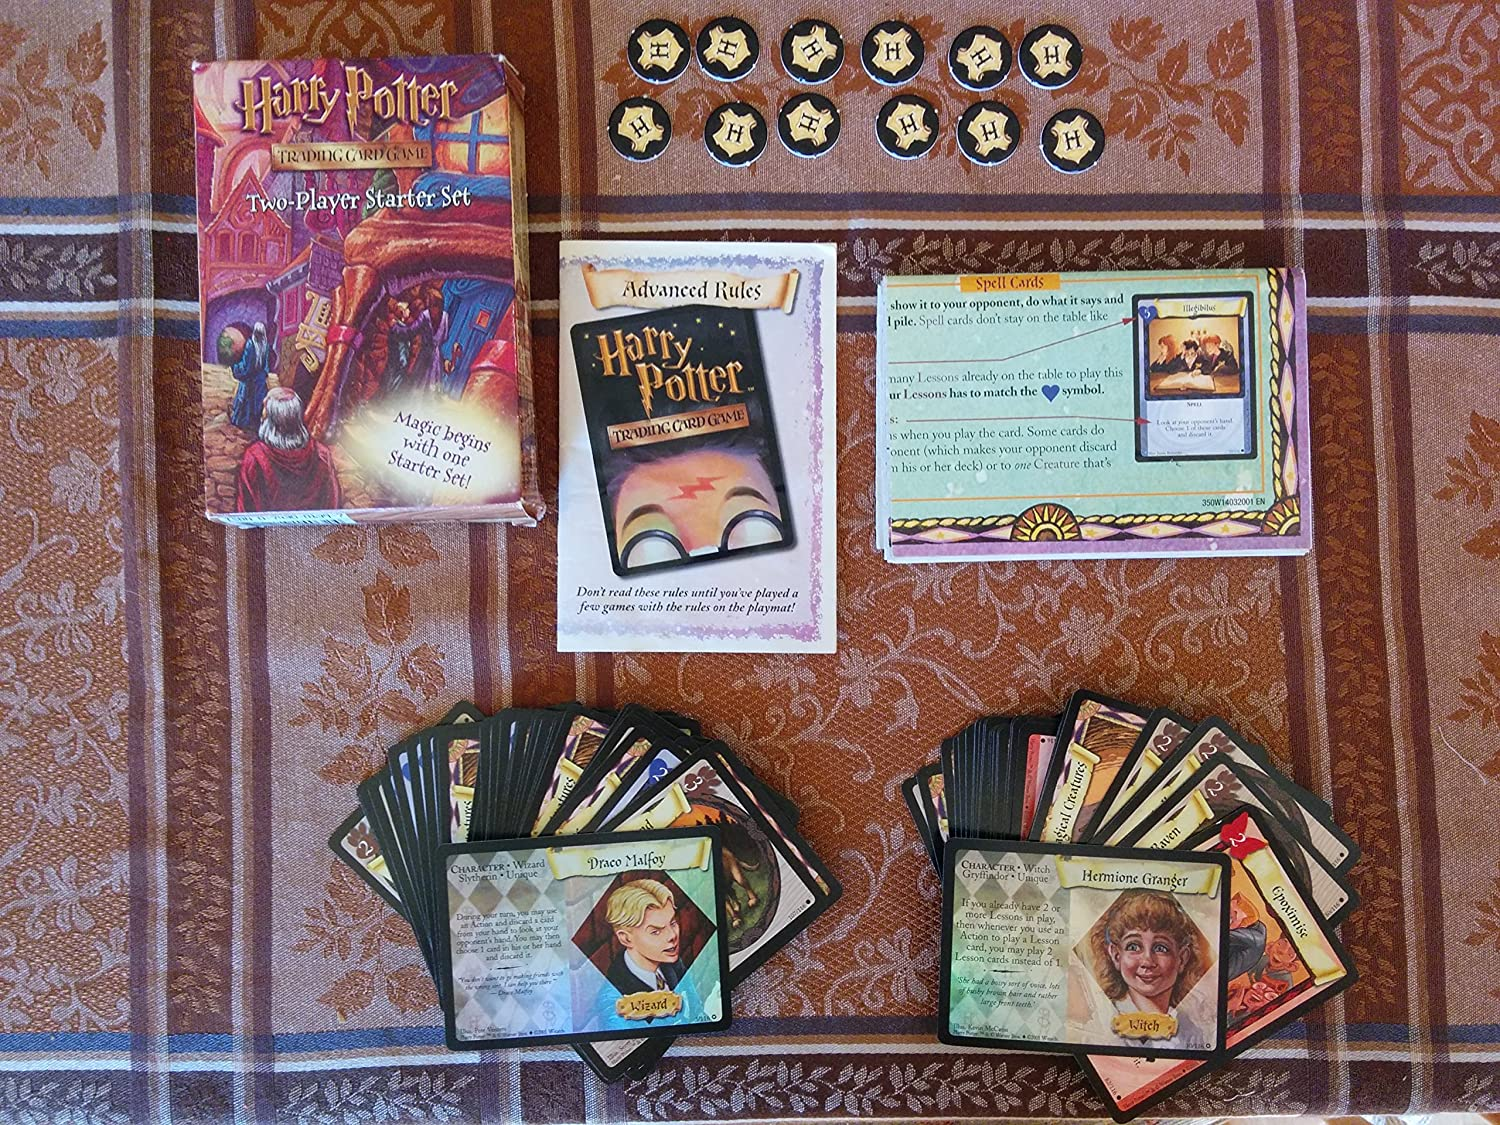 Harry Potter Trading Card Game Two-Player Starter Set: Amazon.es ...